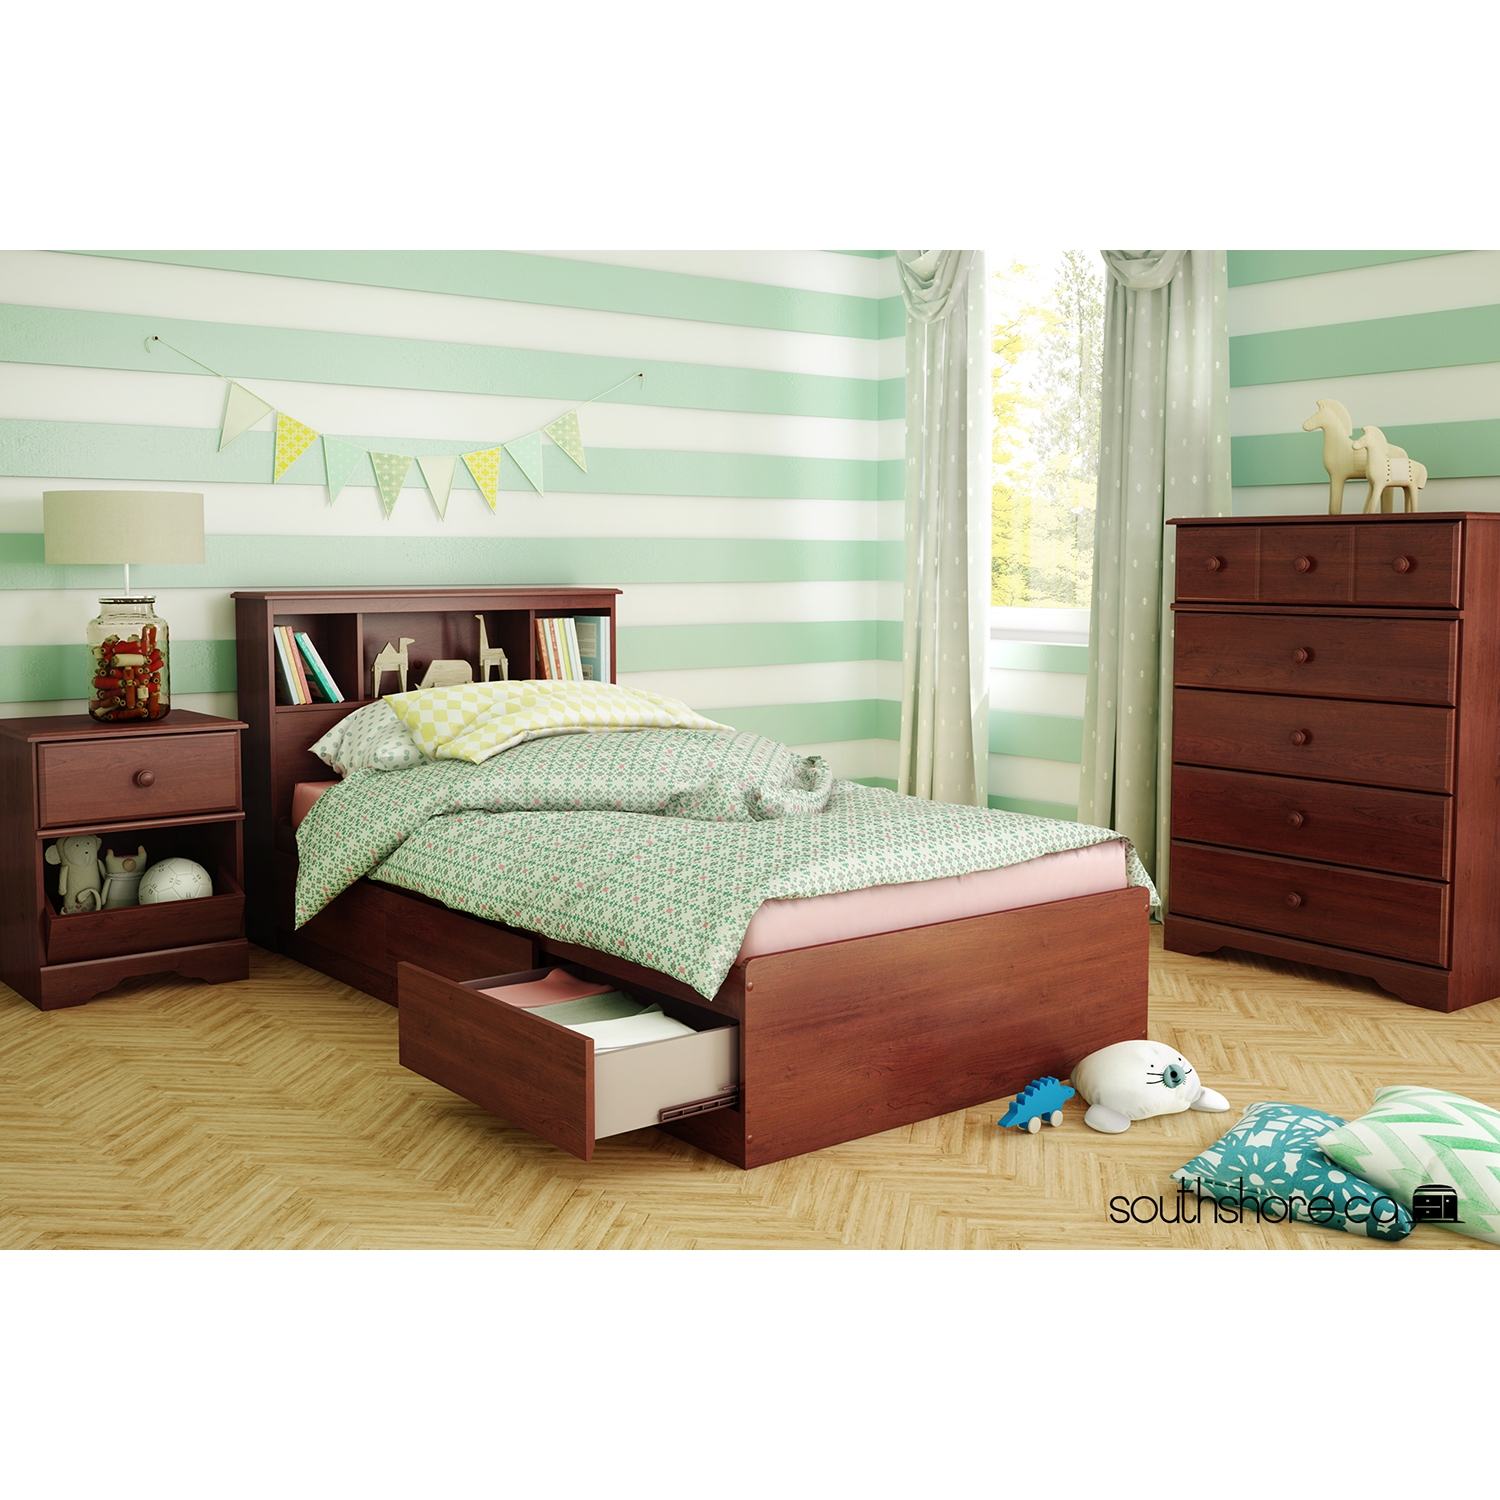 Little Treasures Mates Bed - 3 Drawers, Royal Cherry - SS-3846-B